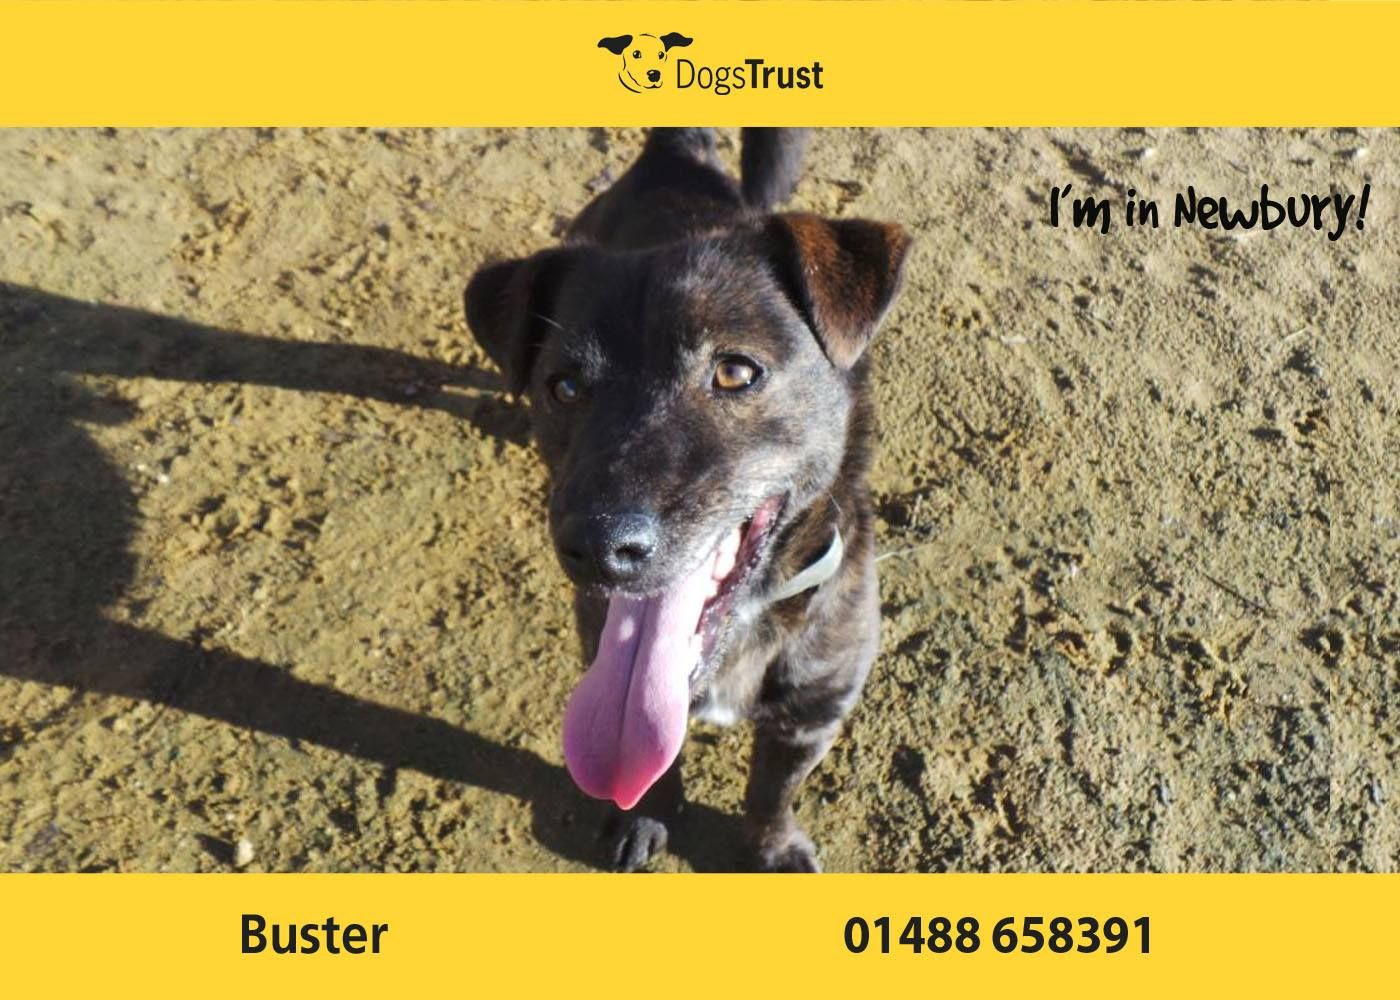 Buster here from dogs trust newbury likes his own space